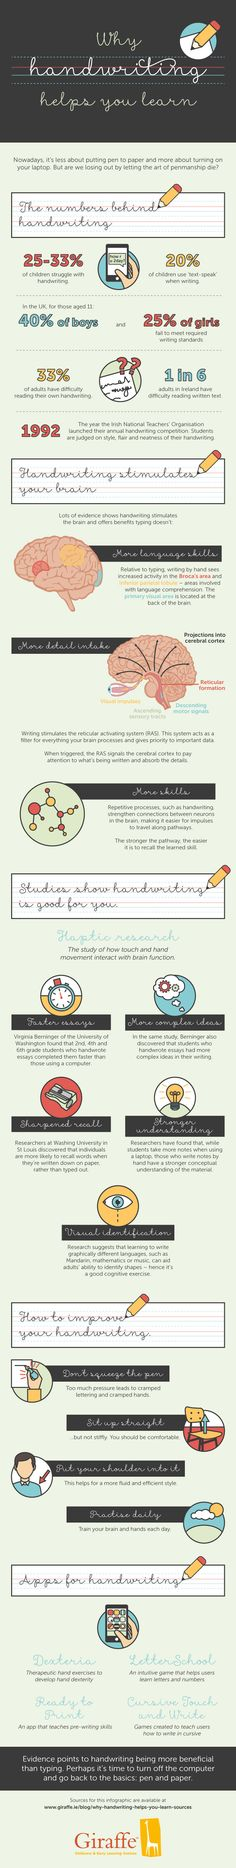 Why Handwriting Helps You Learn #infographic #Handwriting #Education